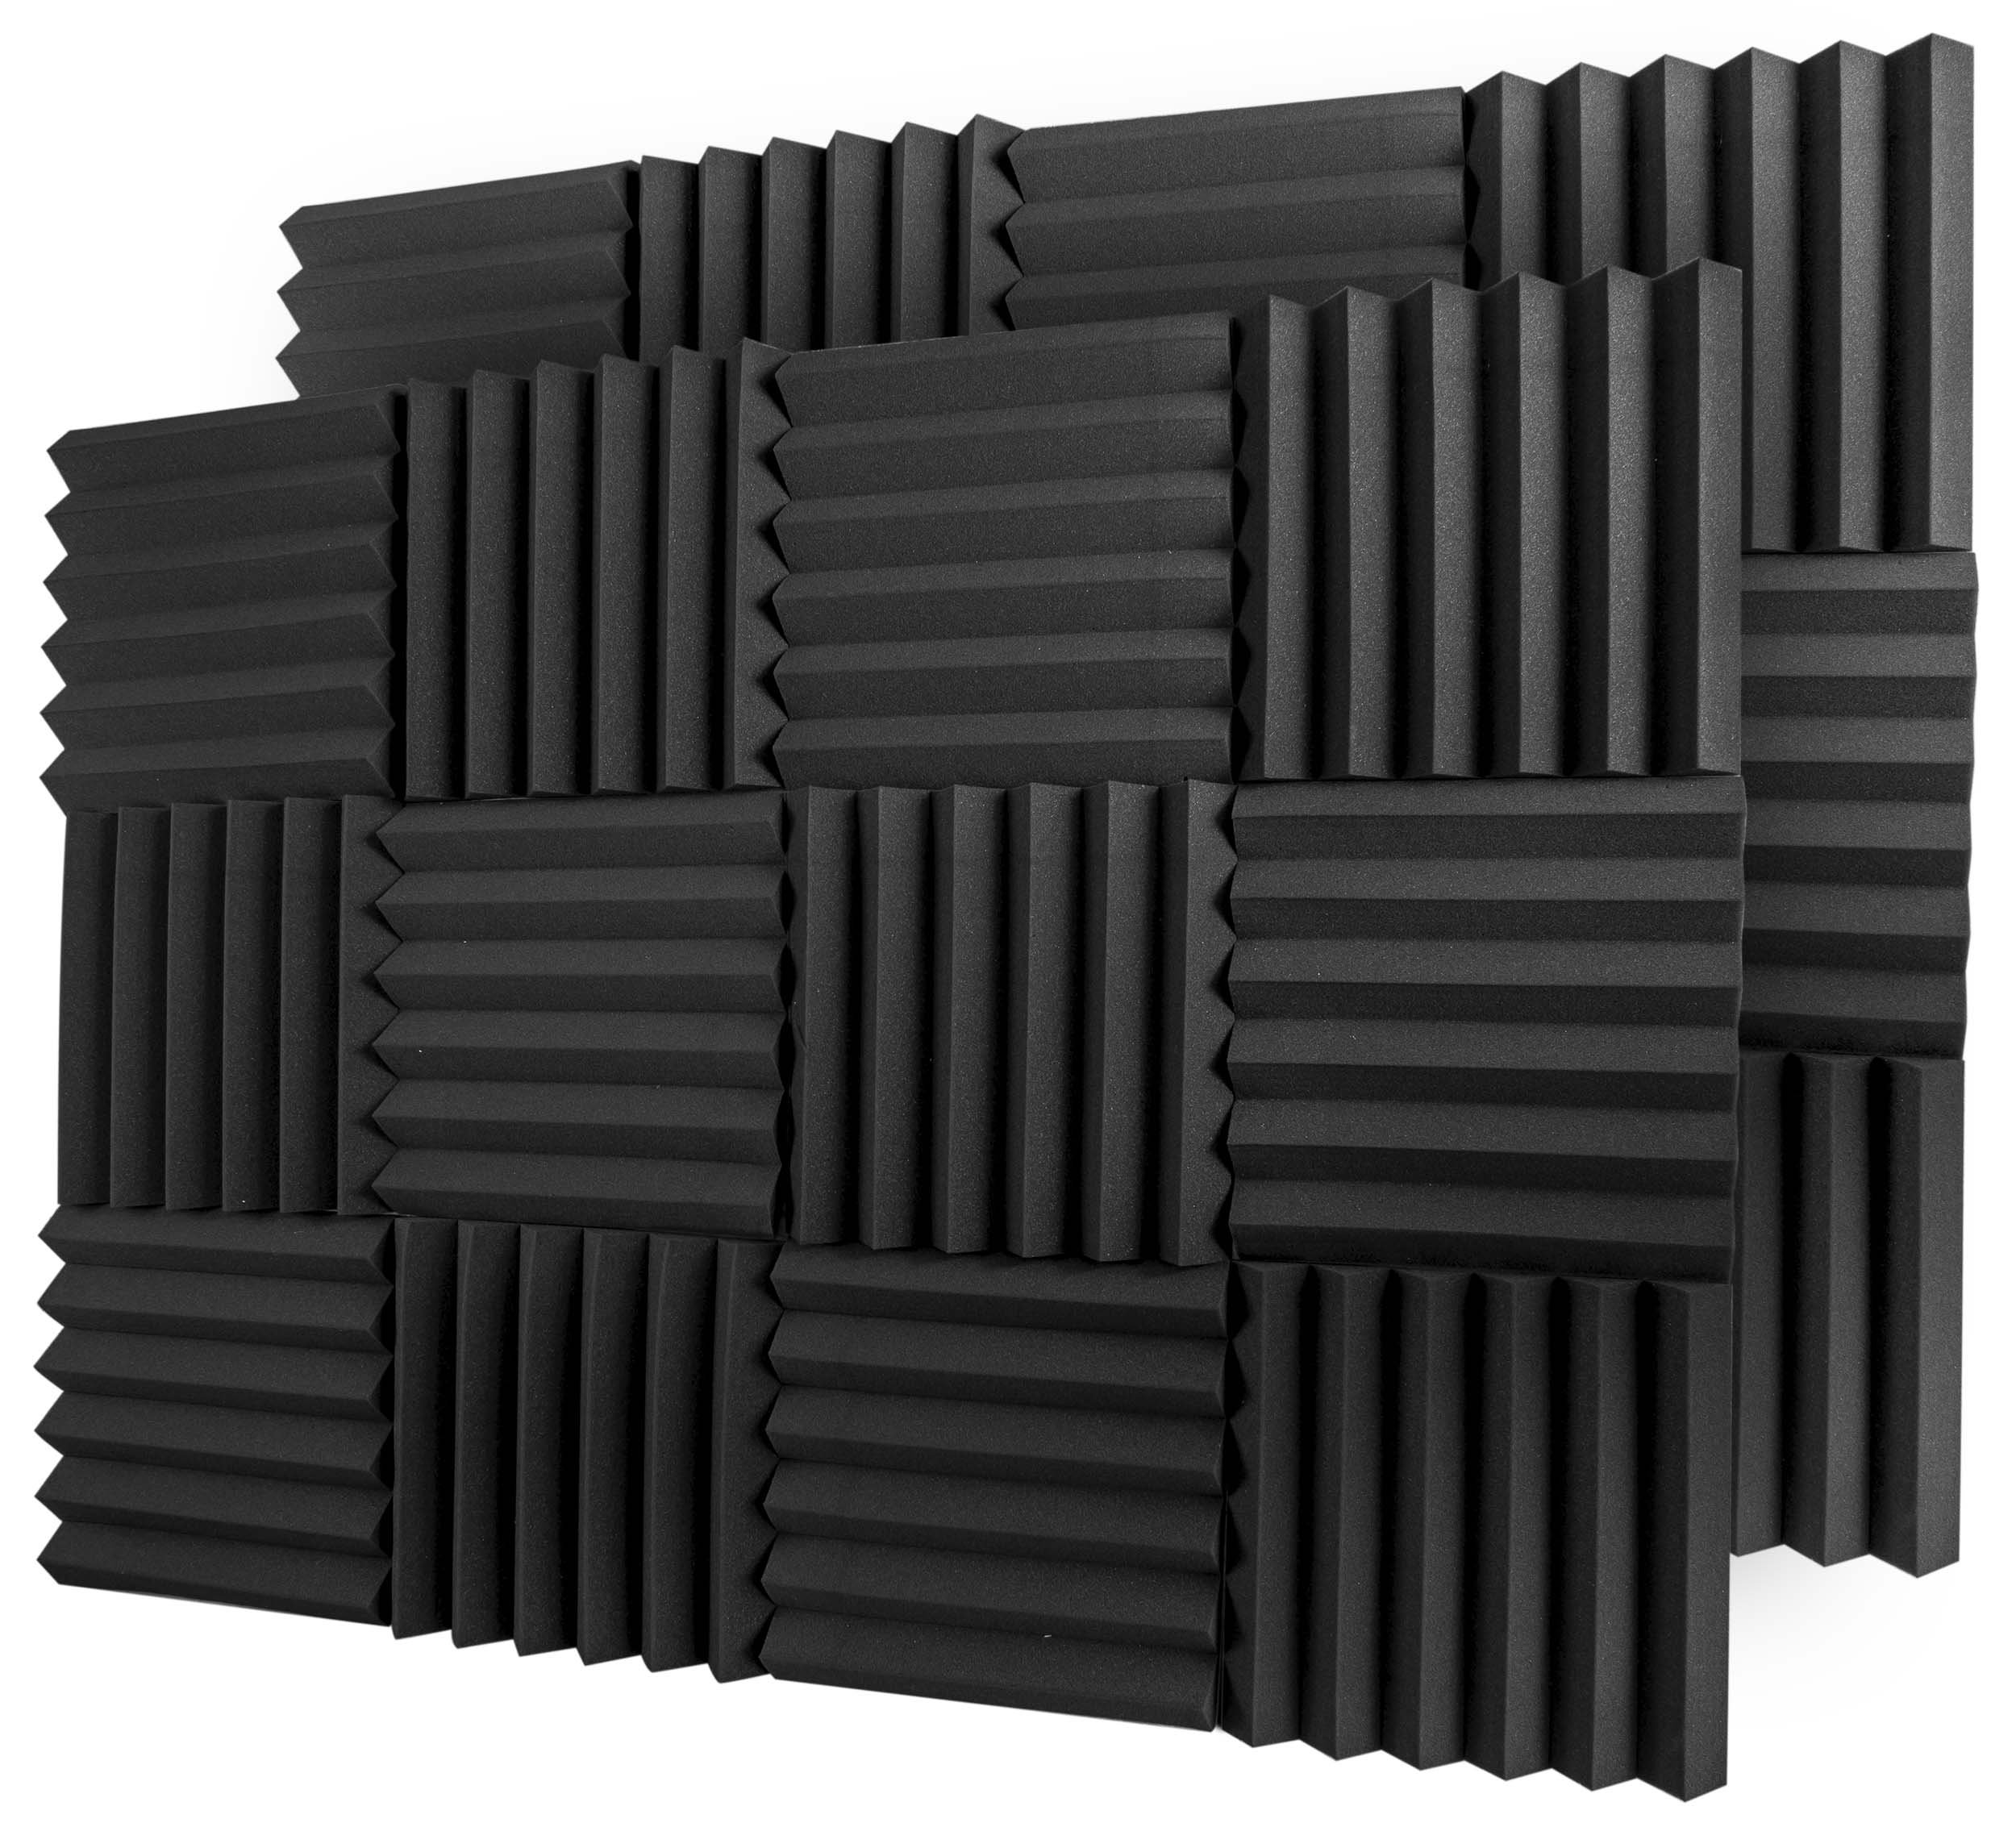 A2S Protection 24 Pack Acoustic Foam Panels 2'' X 12'' X 12'' Soundproofing Studio Foam Wedge Tiles Fireproof - Top Quality - Ideal for Home & Studio Sound Insulation - Density 25Kg/CMB (Black 2'' 24pcs) by A2S Protection